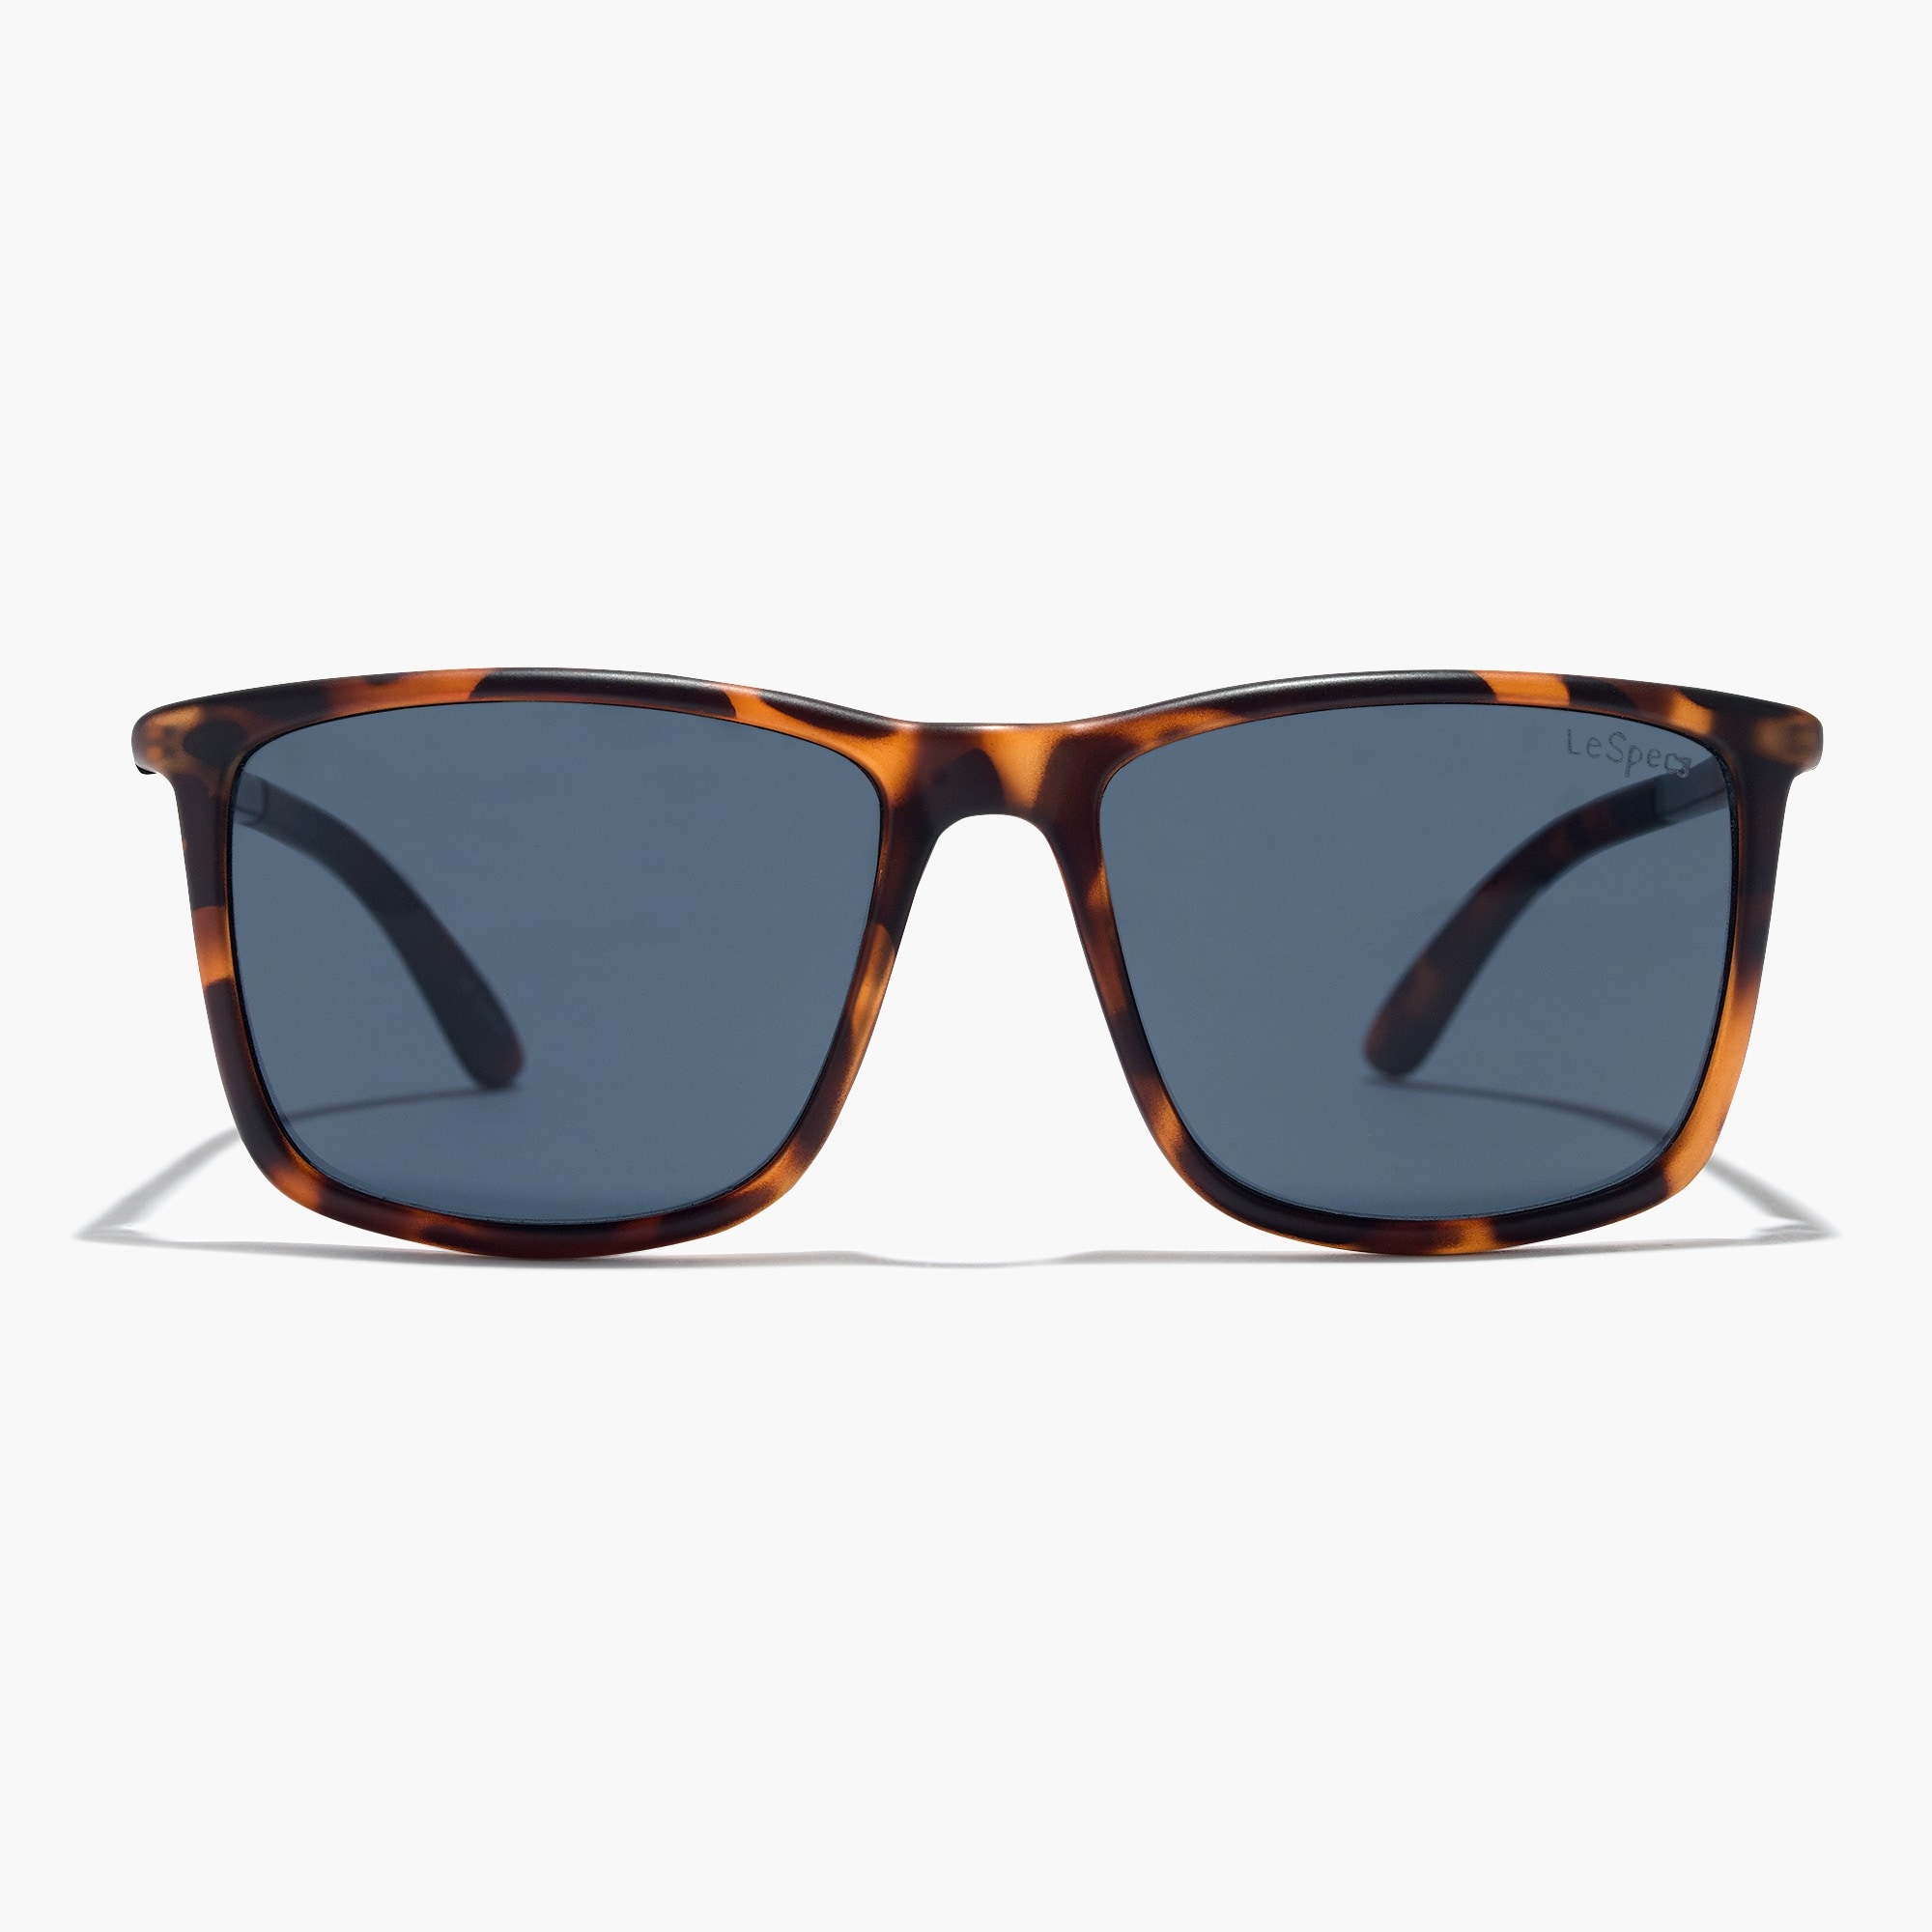 LeSpecs® Tweedledum sunglasses men j.crew in good company c